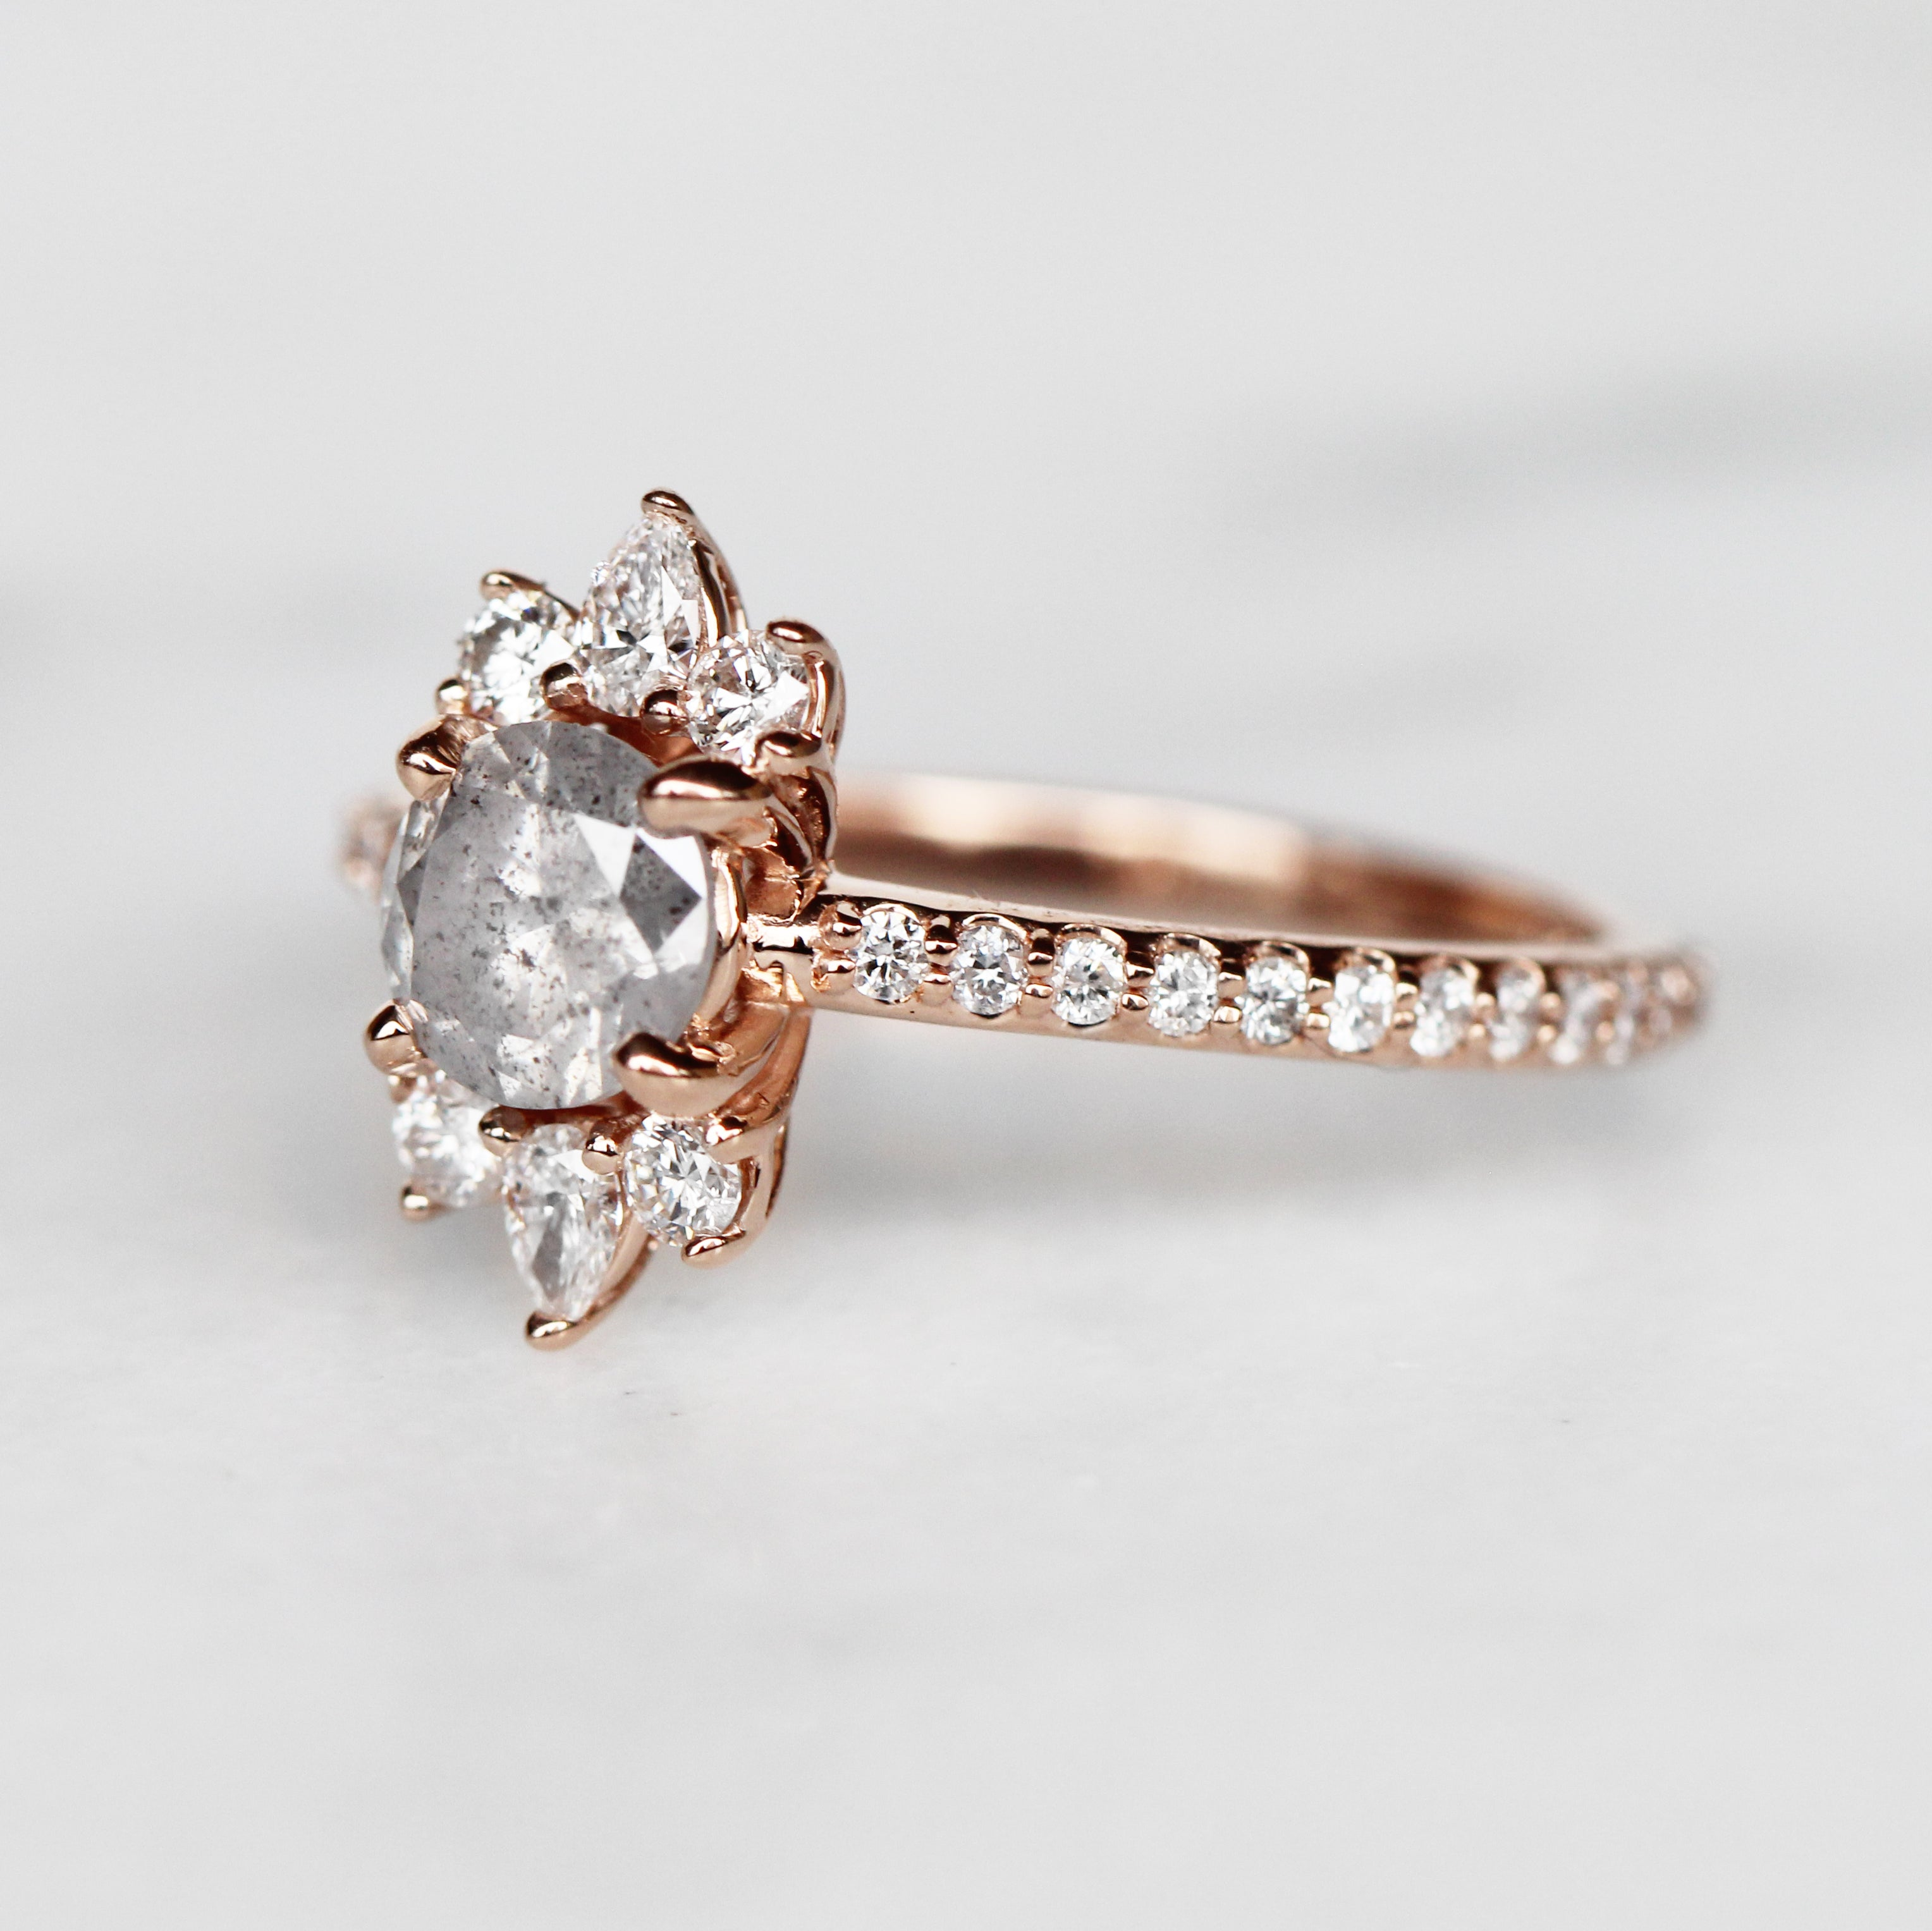 Cora Ring with .72 Carat Celestial Diamond in 10k Rose Gold - Ready to Size and Ship - Midwinter Co. Alternative Bridal Rings and Modern Fine Jewelry